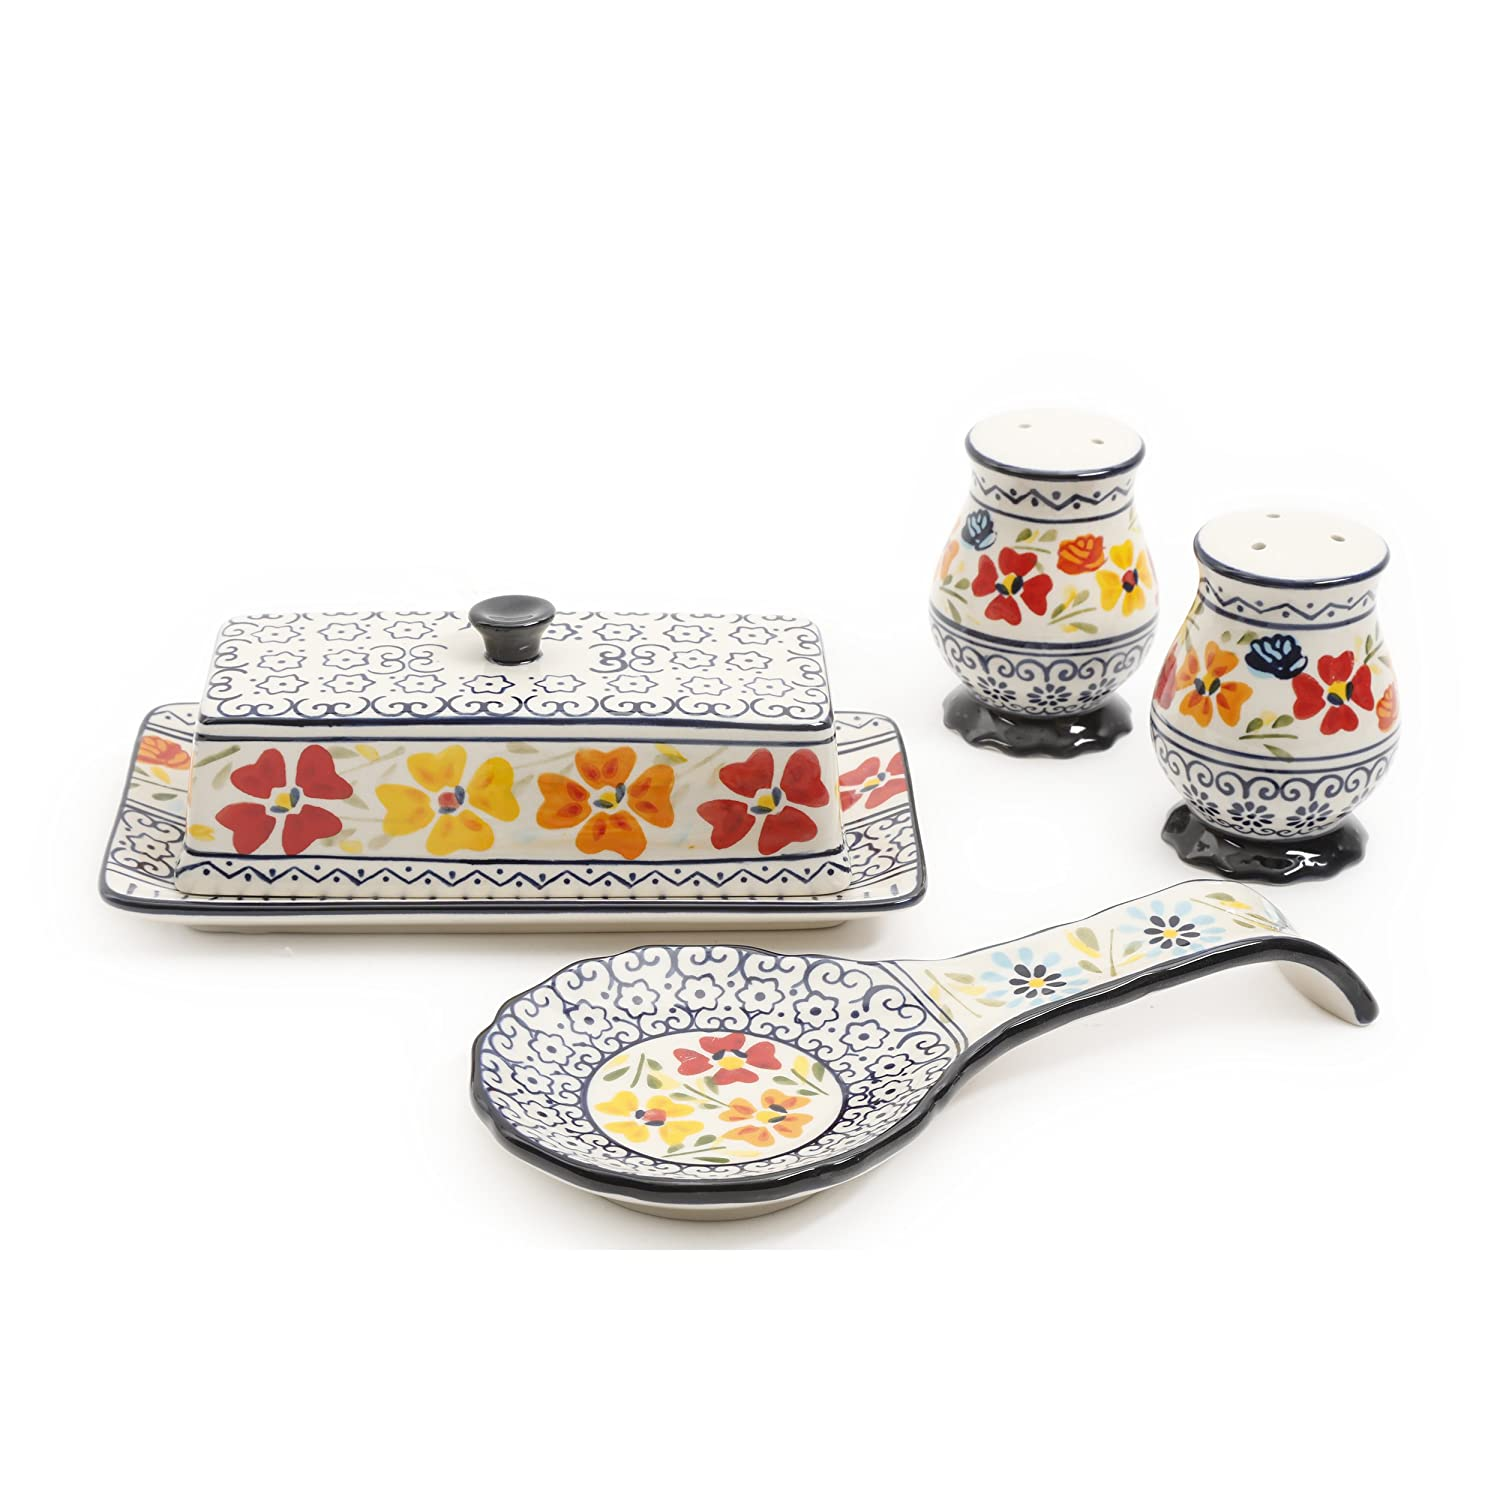 Gibson Elite 92999.02R Luxembourg Handpainted 10.5 Pie Dish & 10 Recrangular Bakeware, Blue and Cream w/Floral Designs